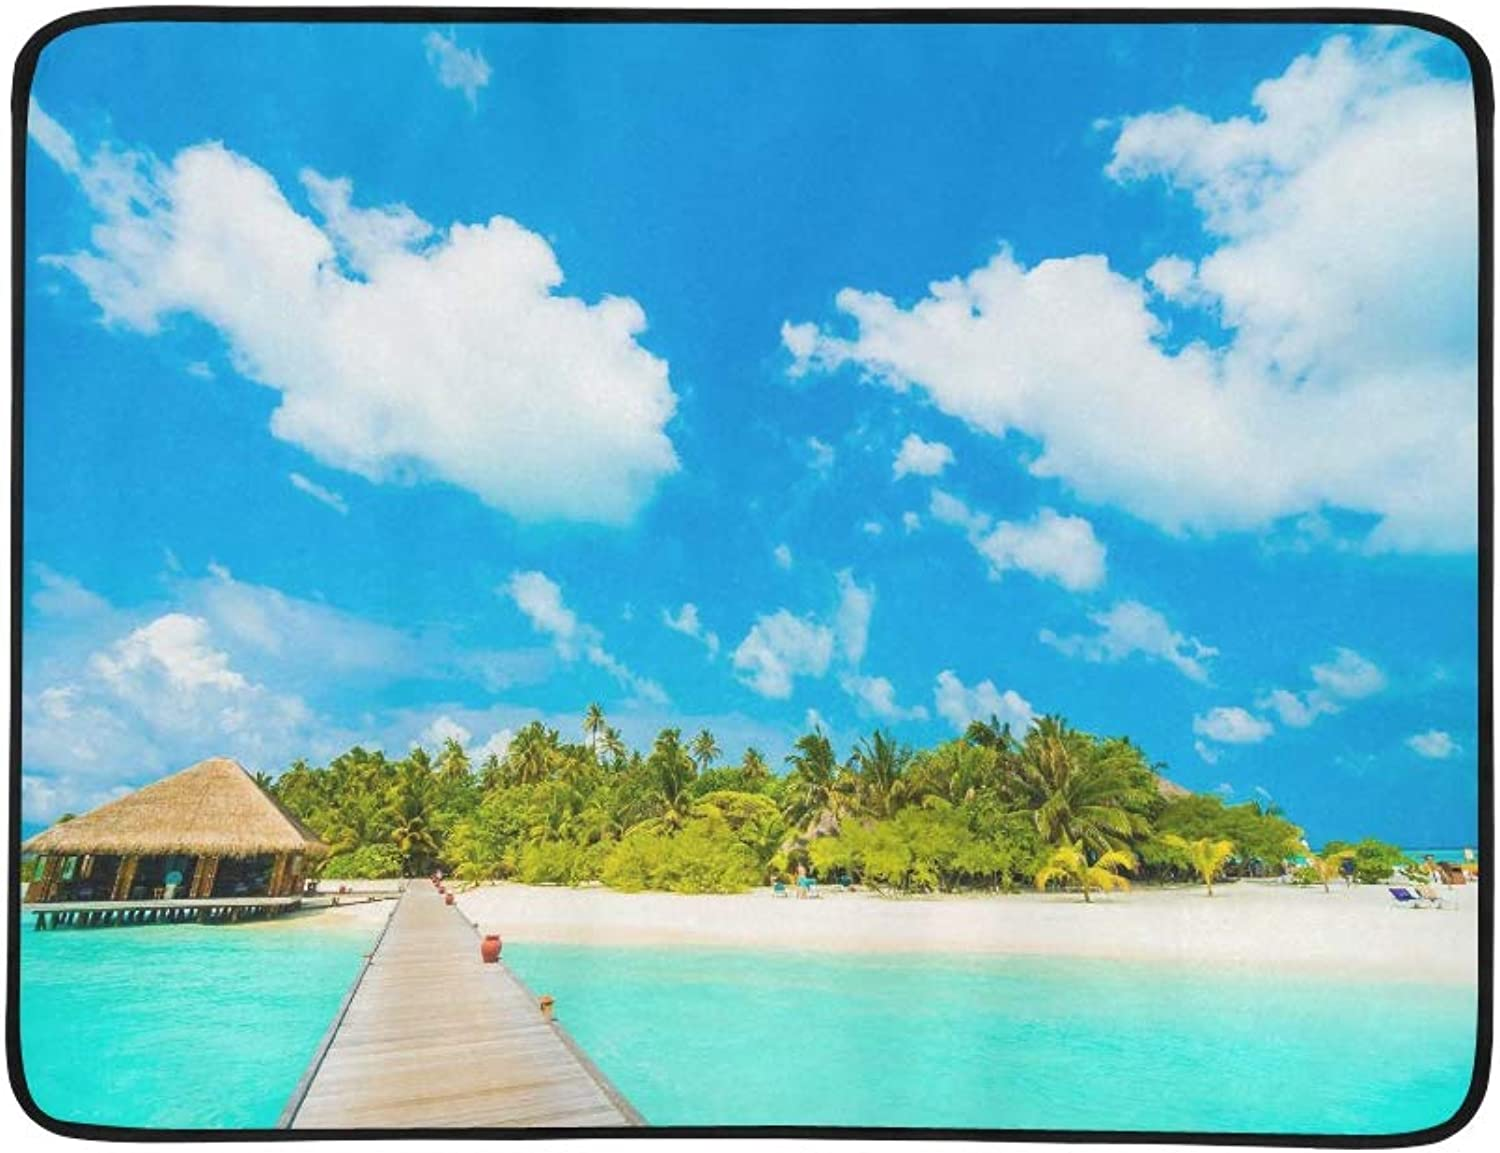 Beautiful Tropical Maldives Resort Hotel and I Pattern Portable and Foldable Blanket Mat 60x78 Inch Handy Mat for Camping Picnic Beach Indoor Outdoor Travel